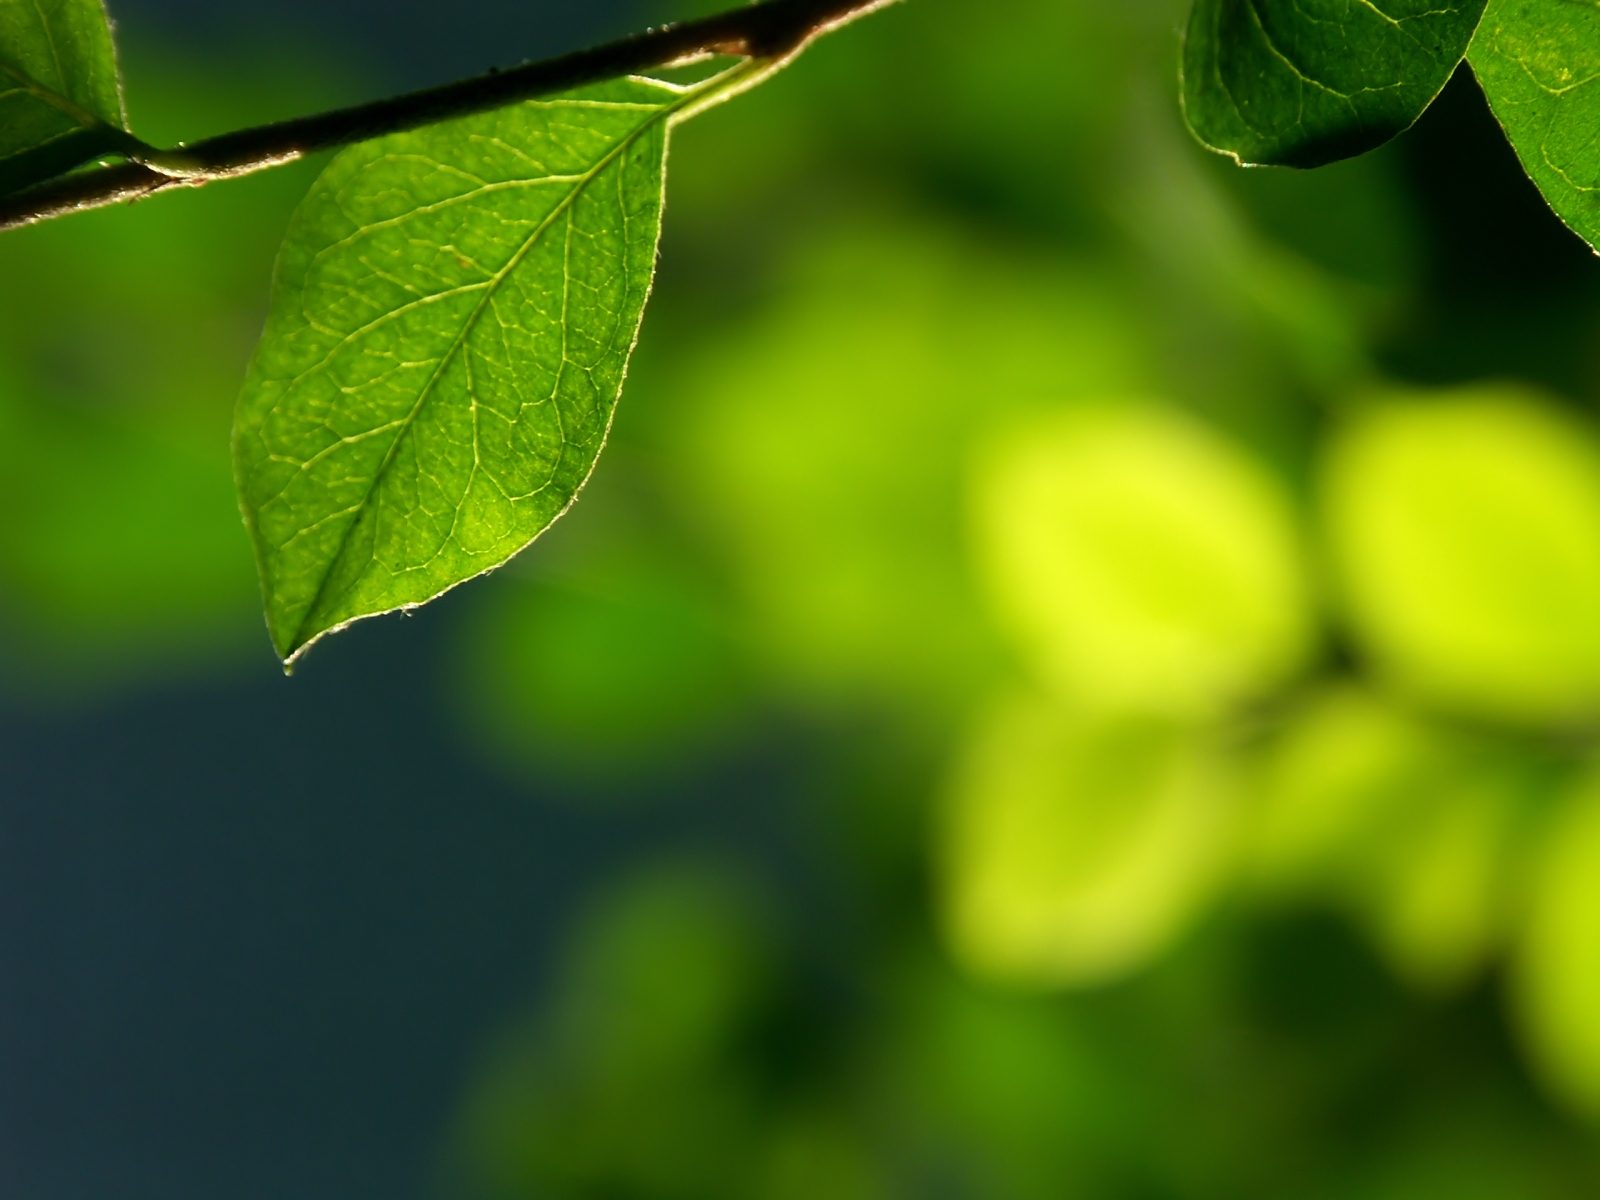 leaf in front of blur x free images at clkercom